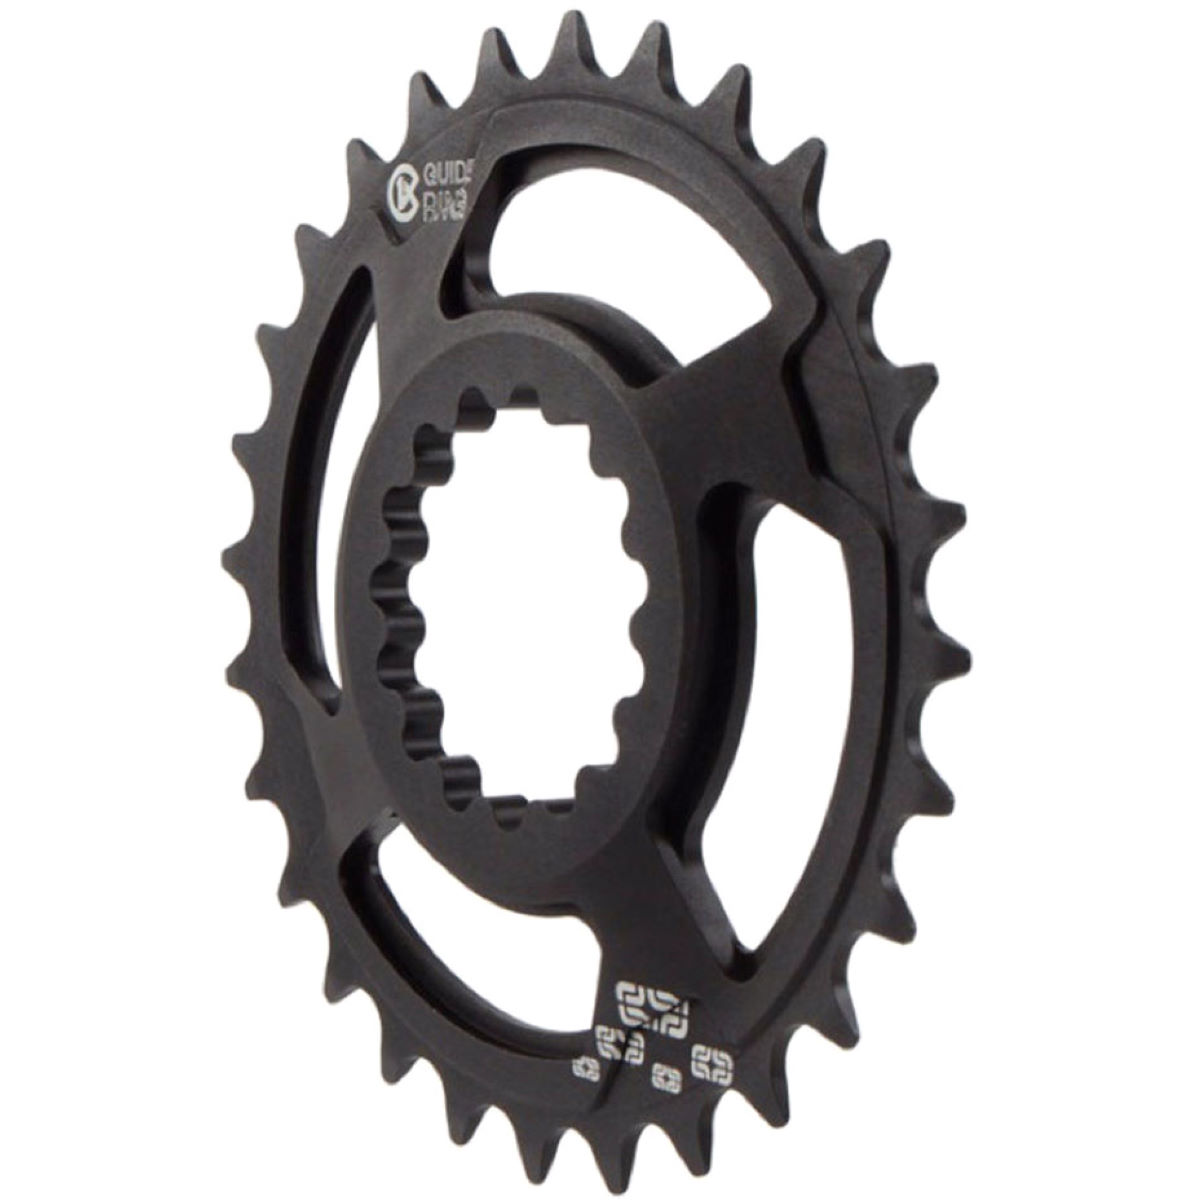 Plateau de guidage e.thirteen Fixation directe - 28t 9/10/11 Speed